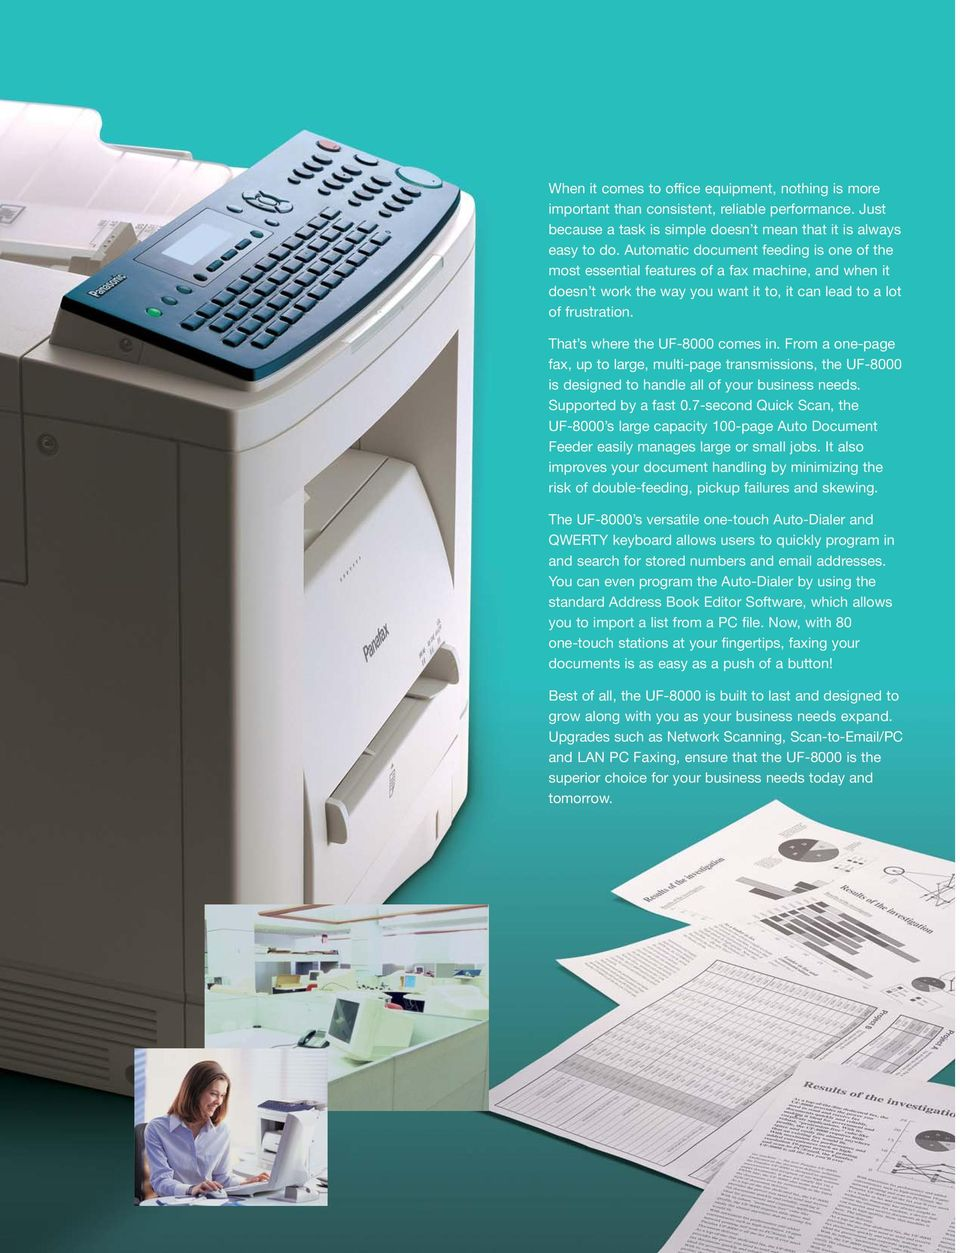 That s where the UF-8000 comes in. From a one-page fax, up to large, multi-page transmissions, the UF-8000 is designed to handle all of your business needs. Supported by a fast 0.